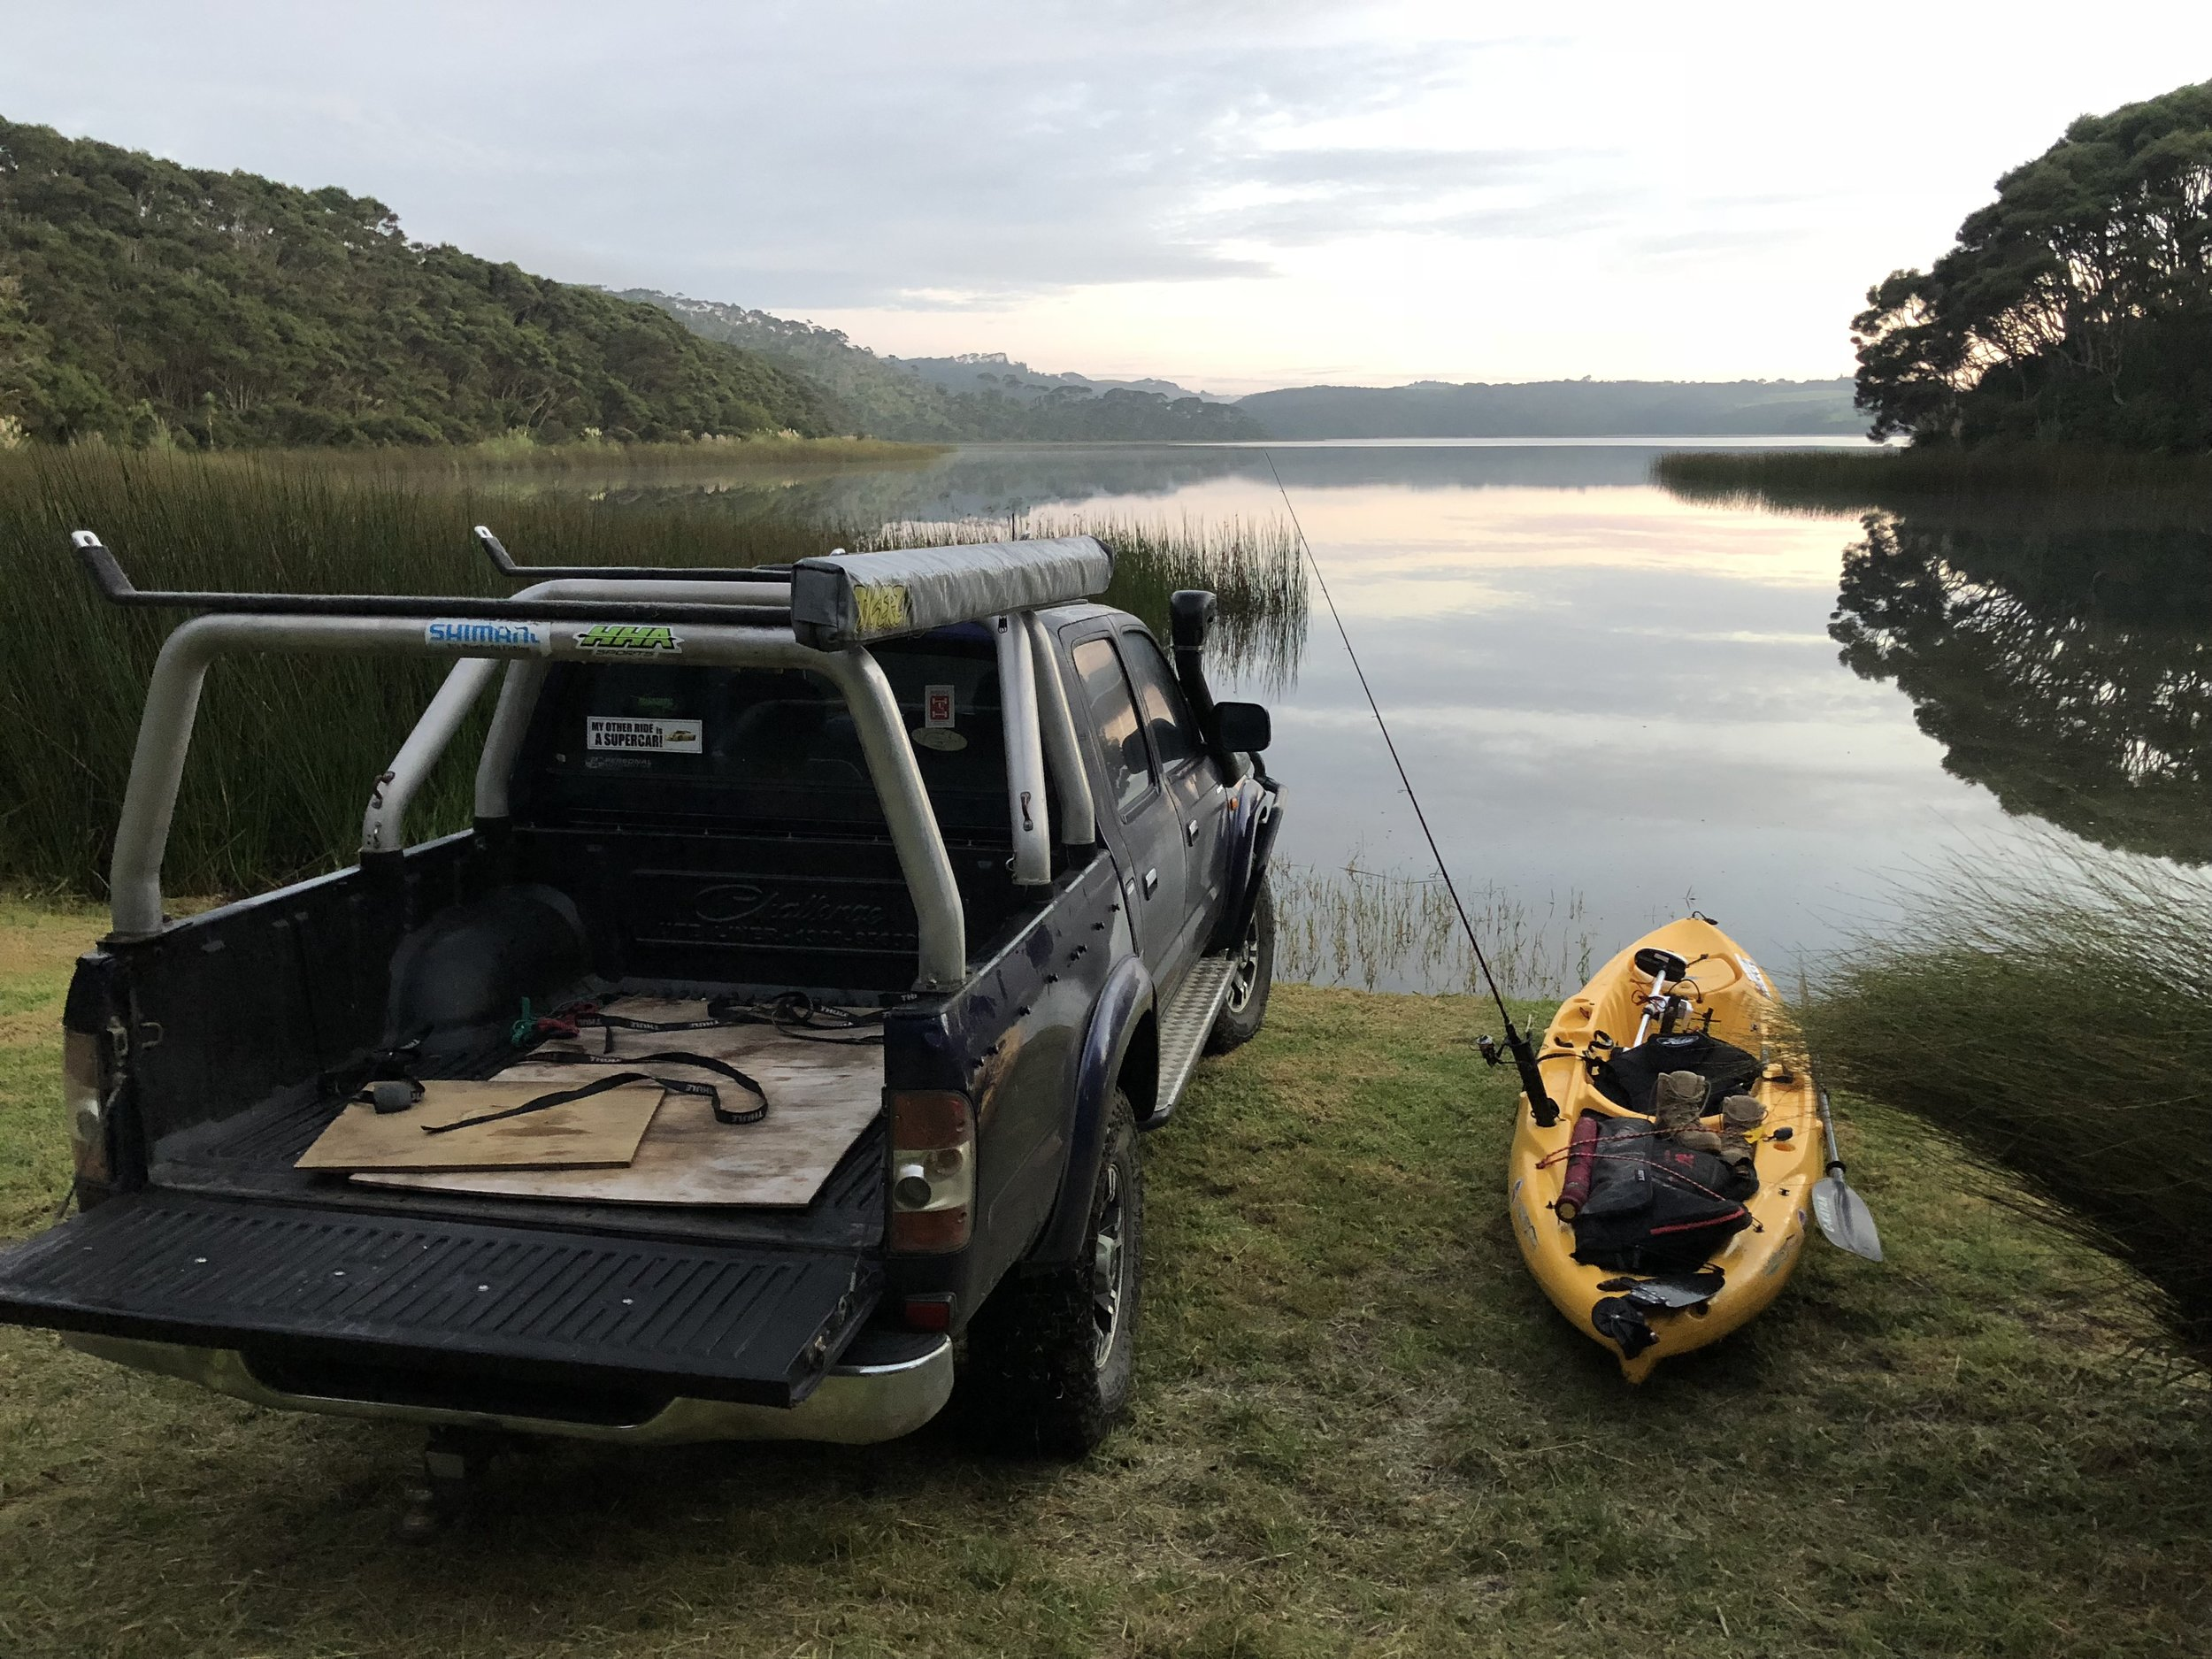 A mornings Kayaking with a spot of fishing thrown in ?